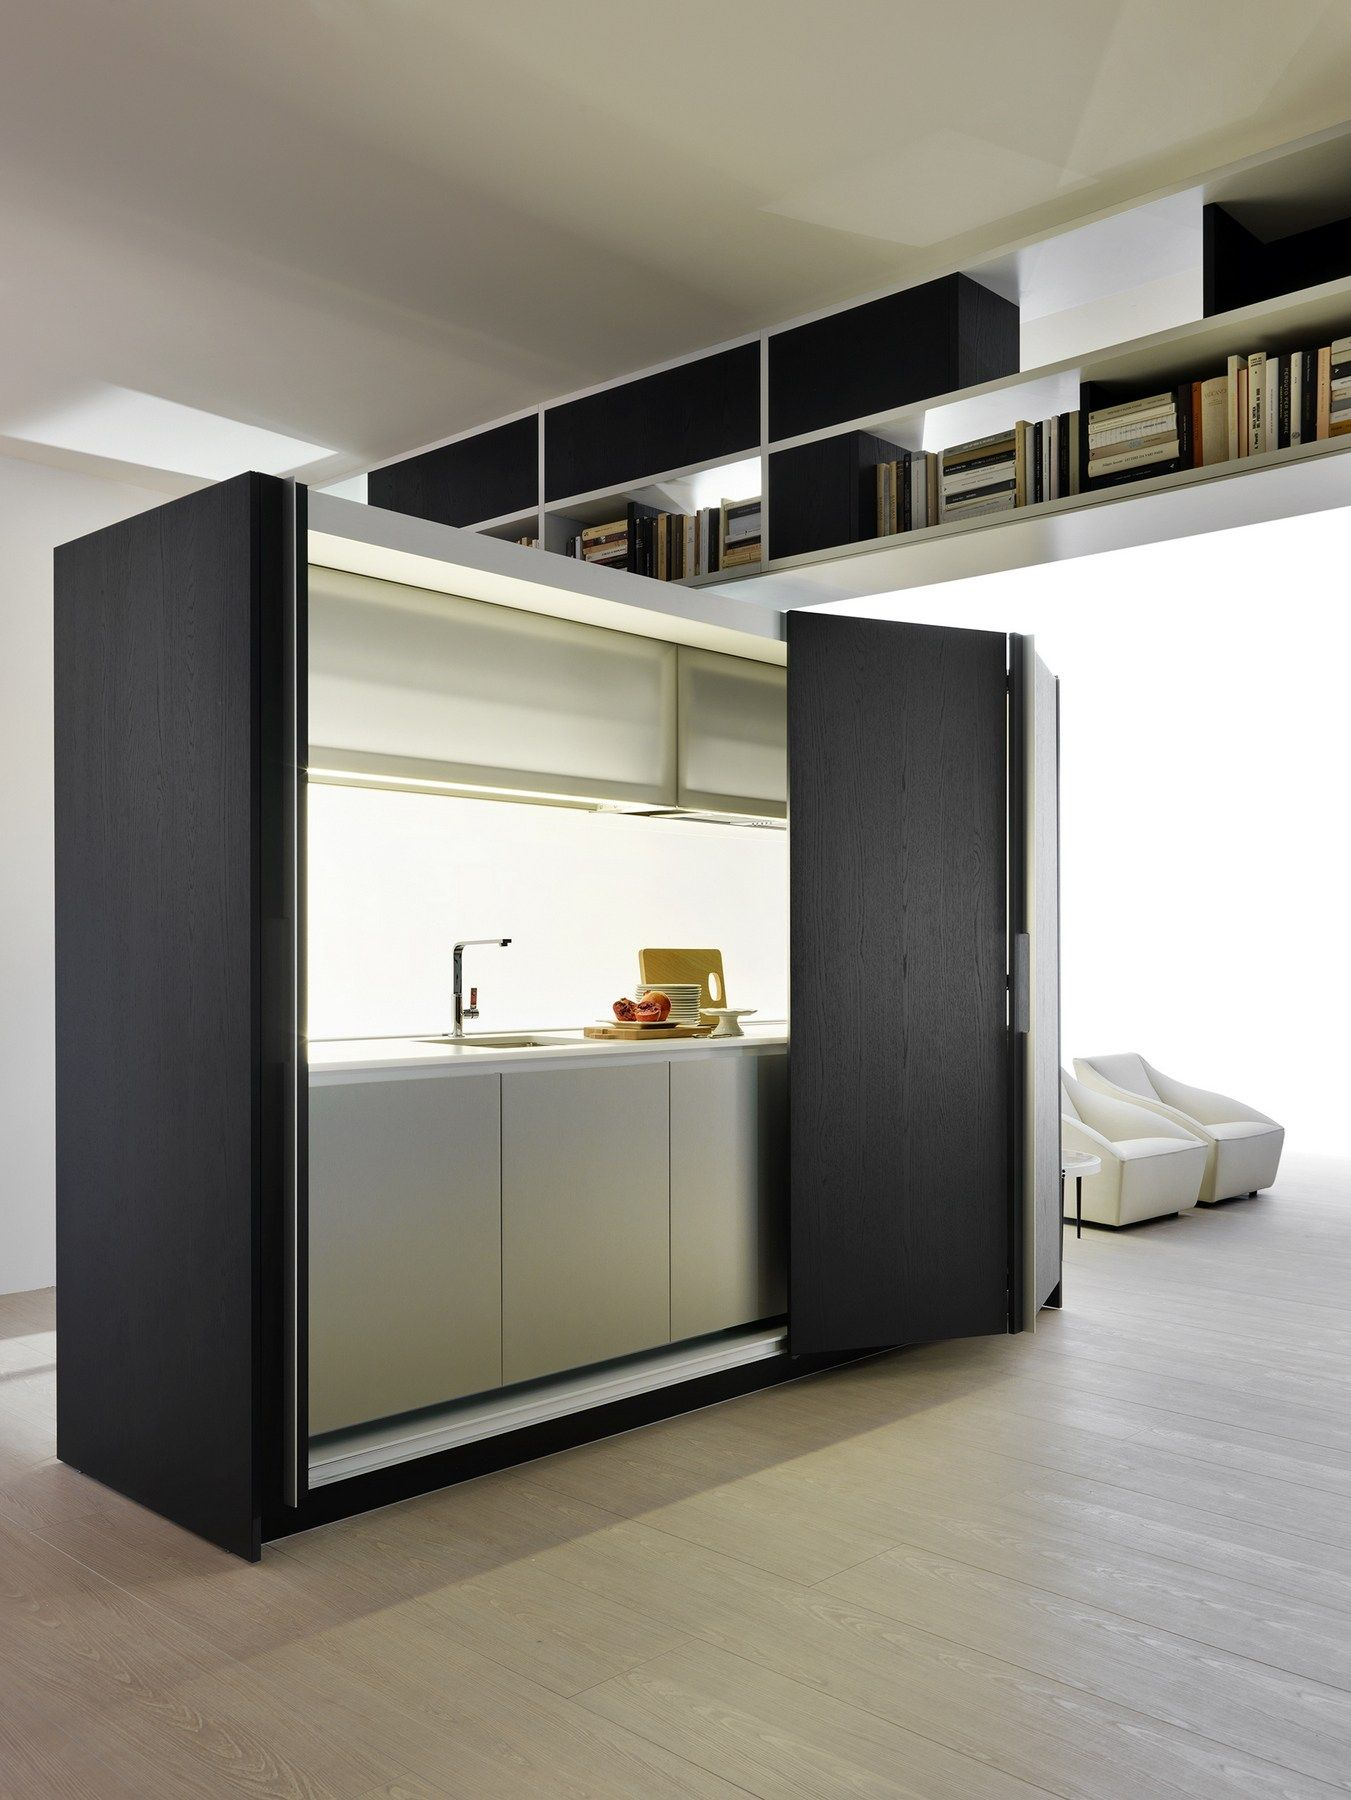 Cucina a scomparsa lineare tival by dada design dante bonuccelli kitchen kitchen kitchen - Cucine monoblocco ikea ...